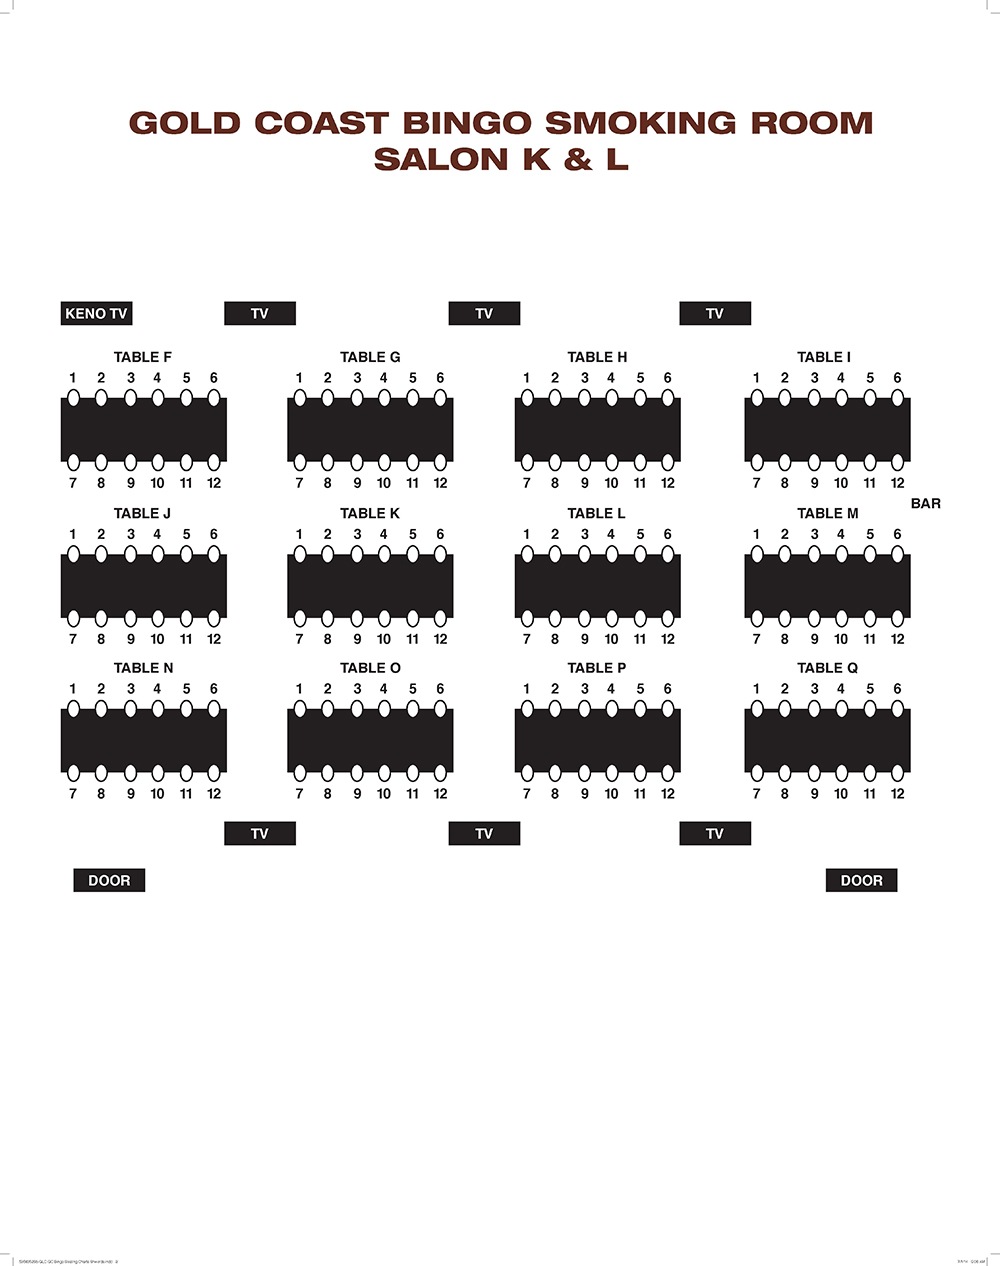 Seating Chart for Non-Smoking Room